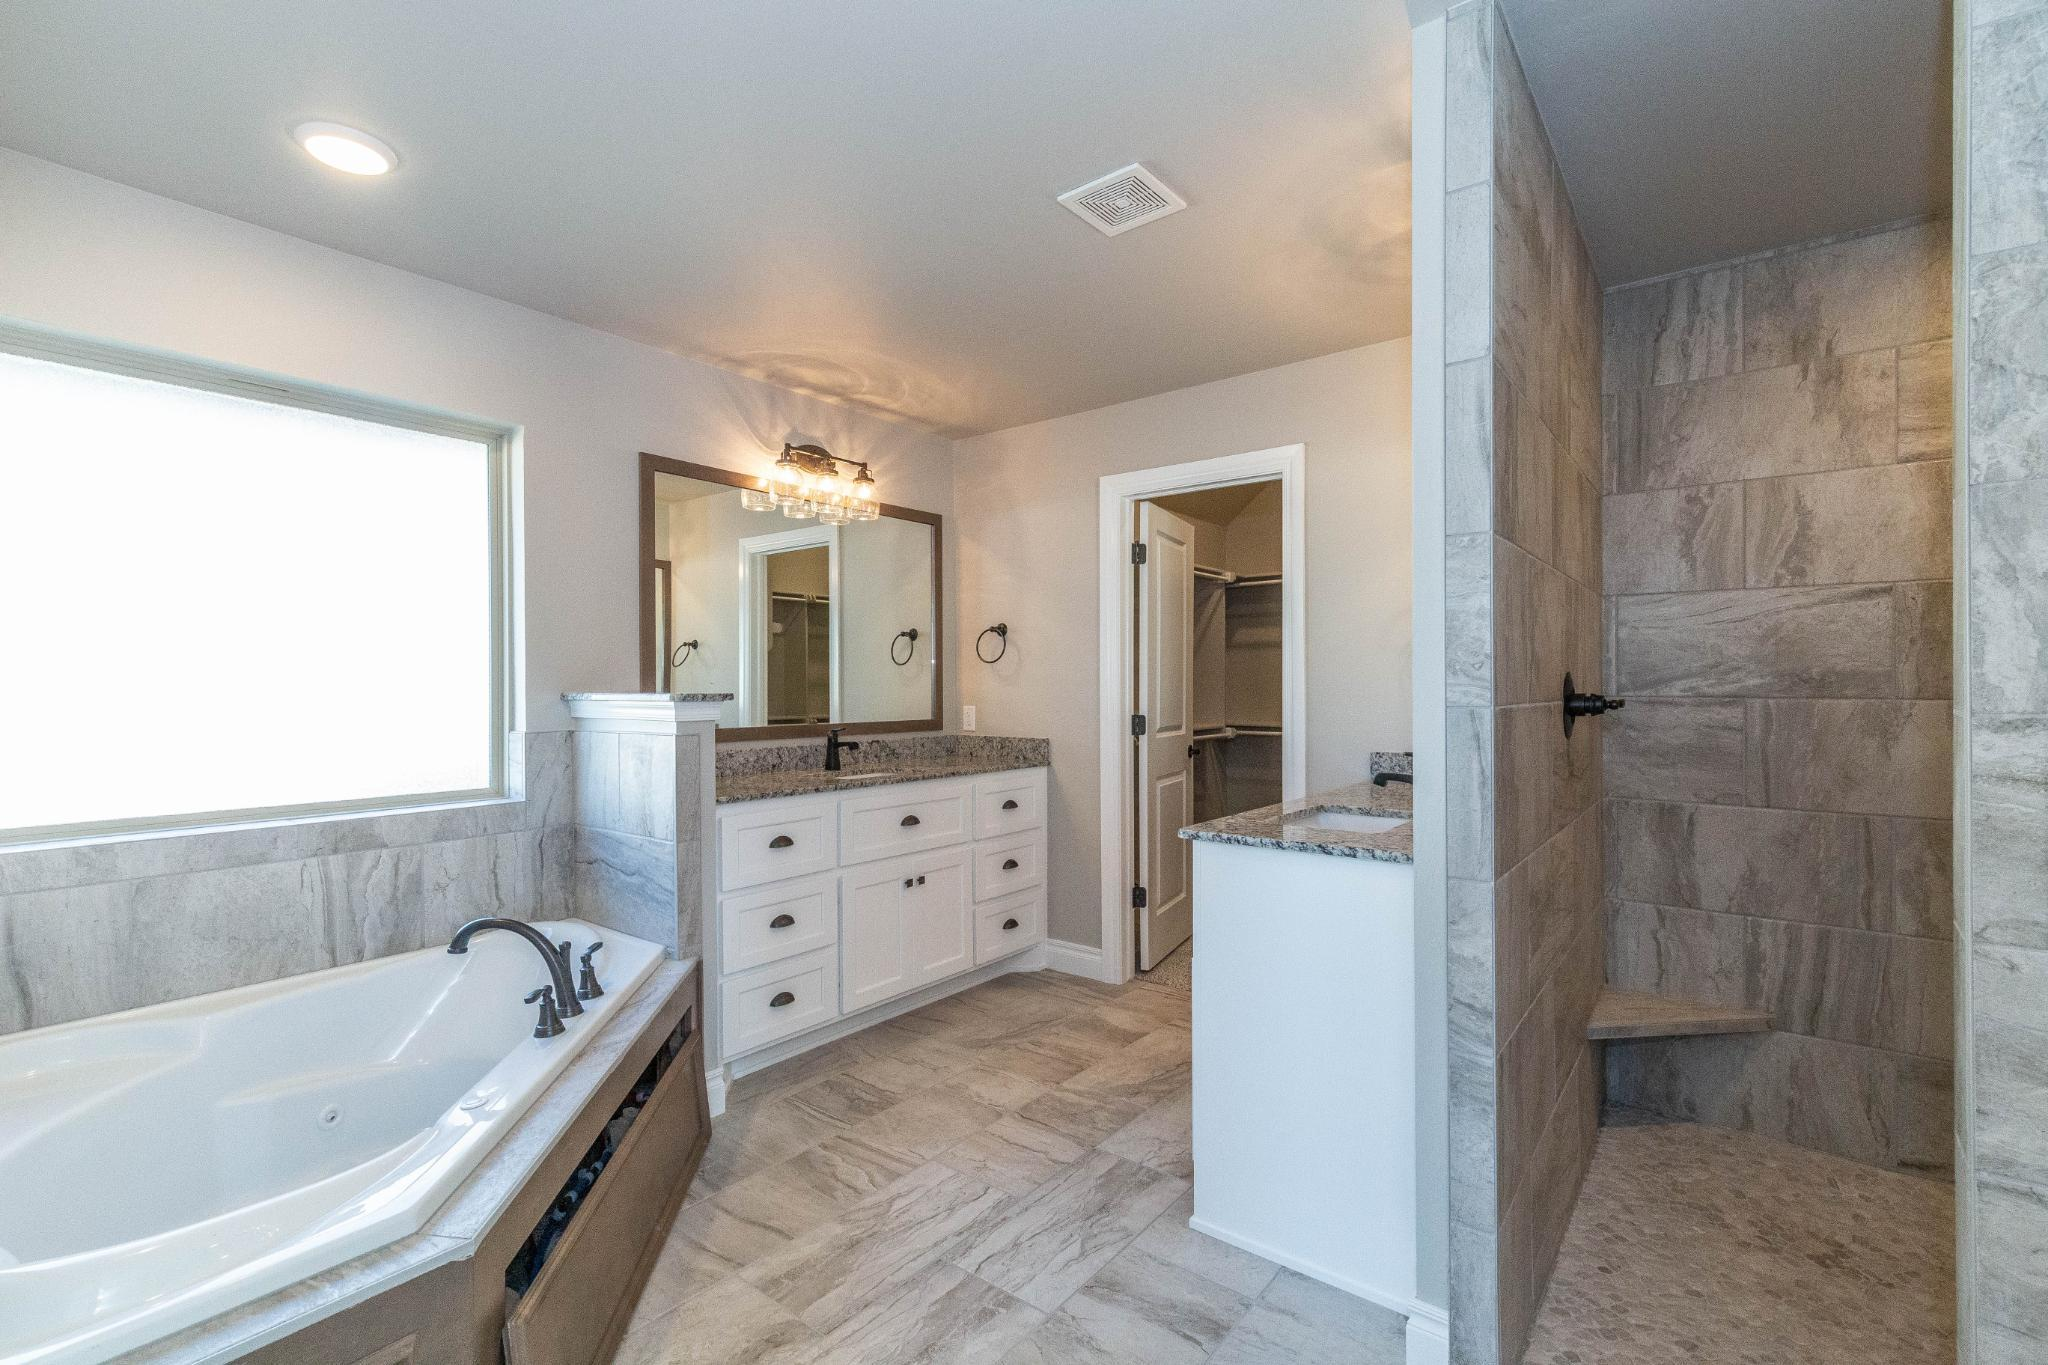 Bathroom featured in the Cornerstone Bonus Room - 5 Bedroom By Homes By Taber in Oklahoma City, OK